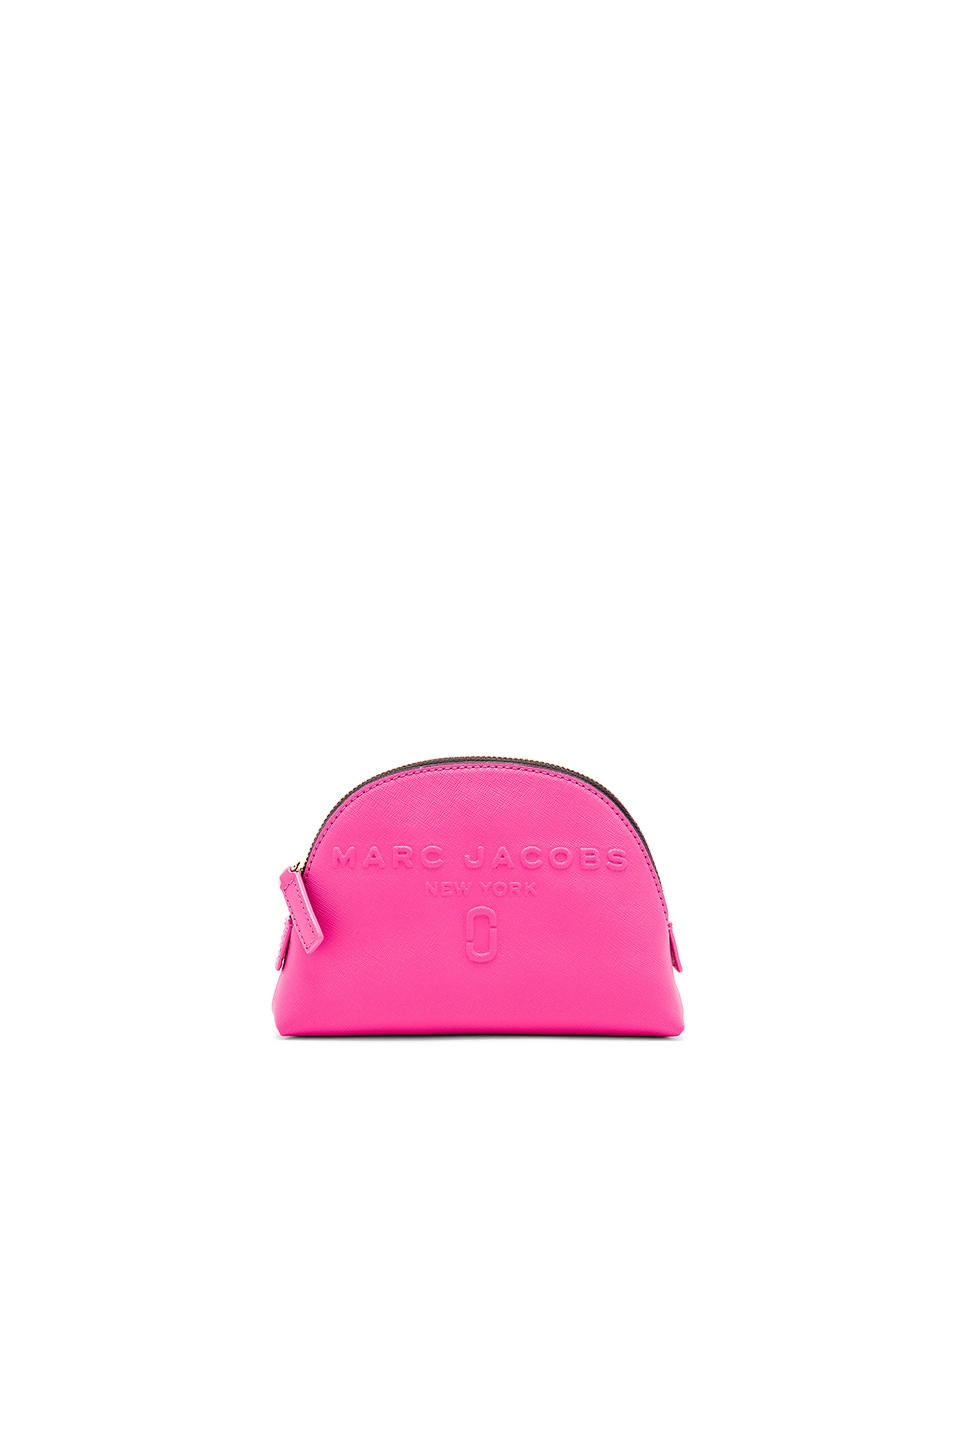 MARC JACOBS SMALL DOME COSMETIC